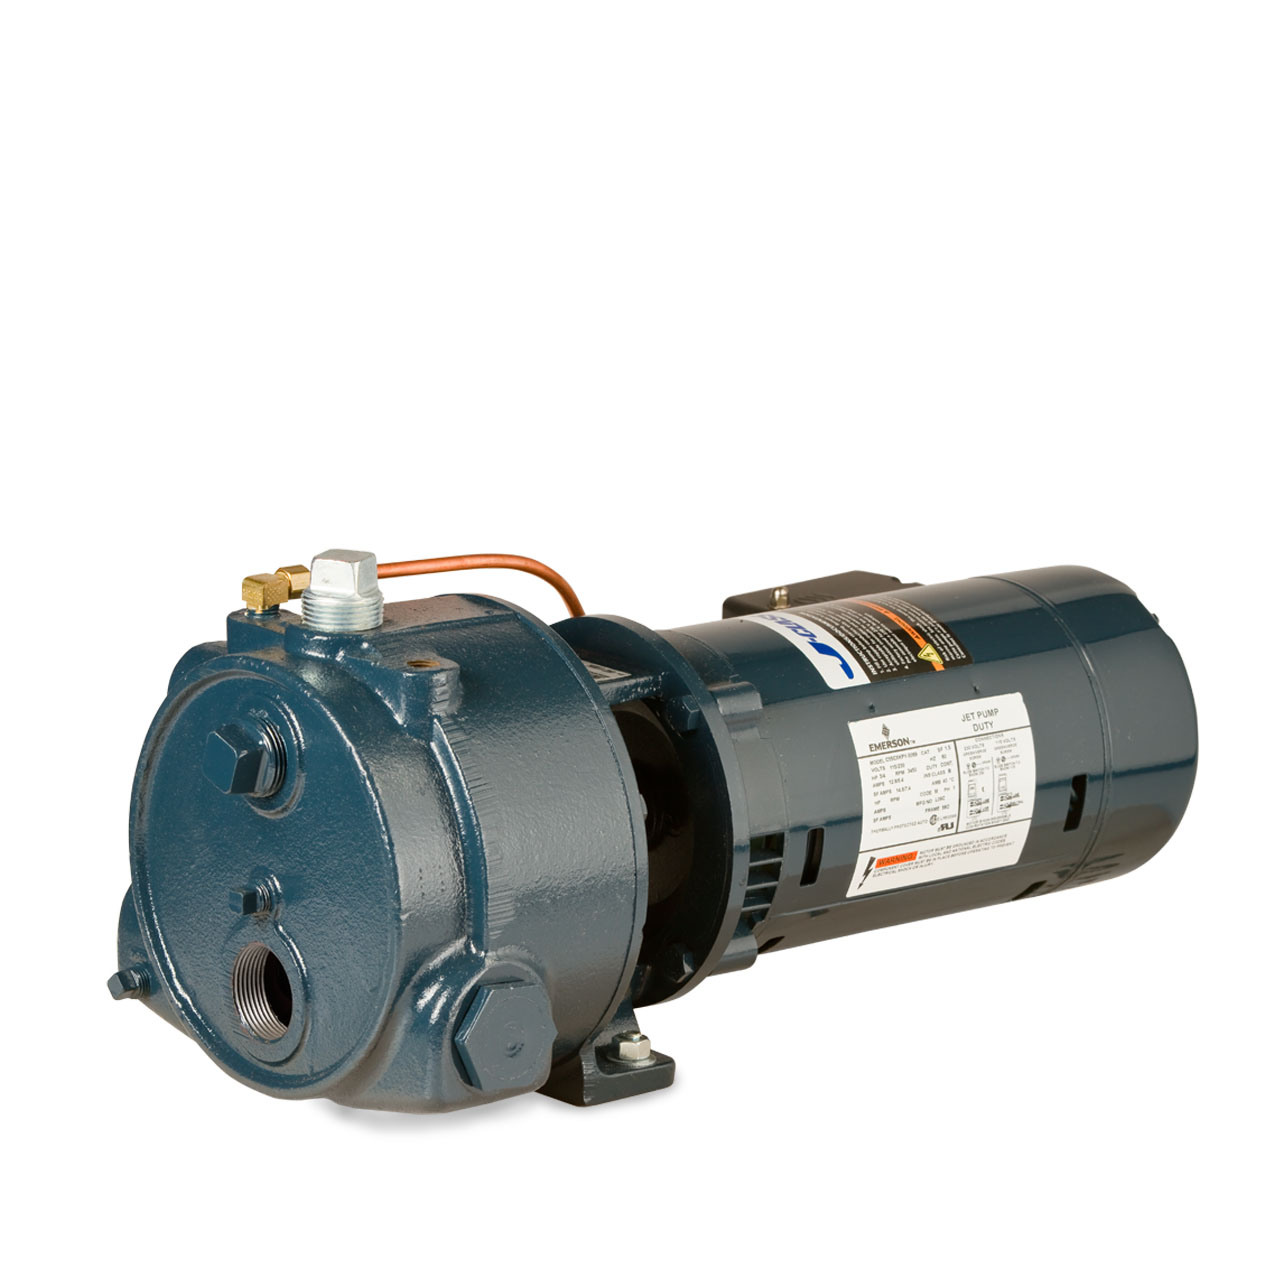 //staging.matherpumps.com/images/Franklin_Electric_jet_pump_FP1CI-C_FPS_J-Class_Schaefer_1RM2_5RM2_7RM2_7.jpg